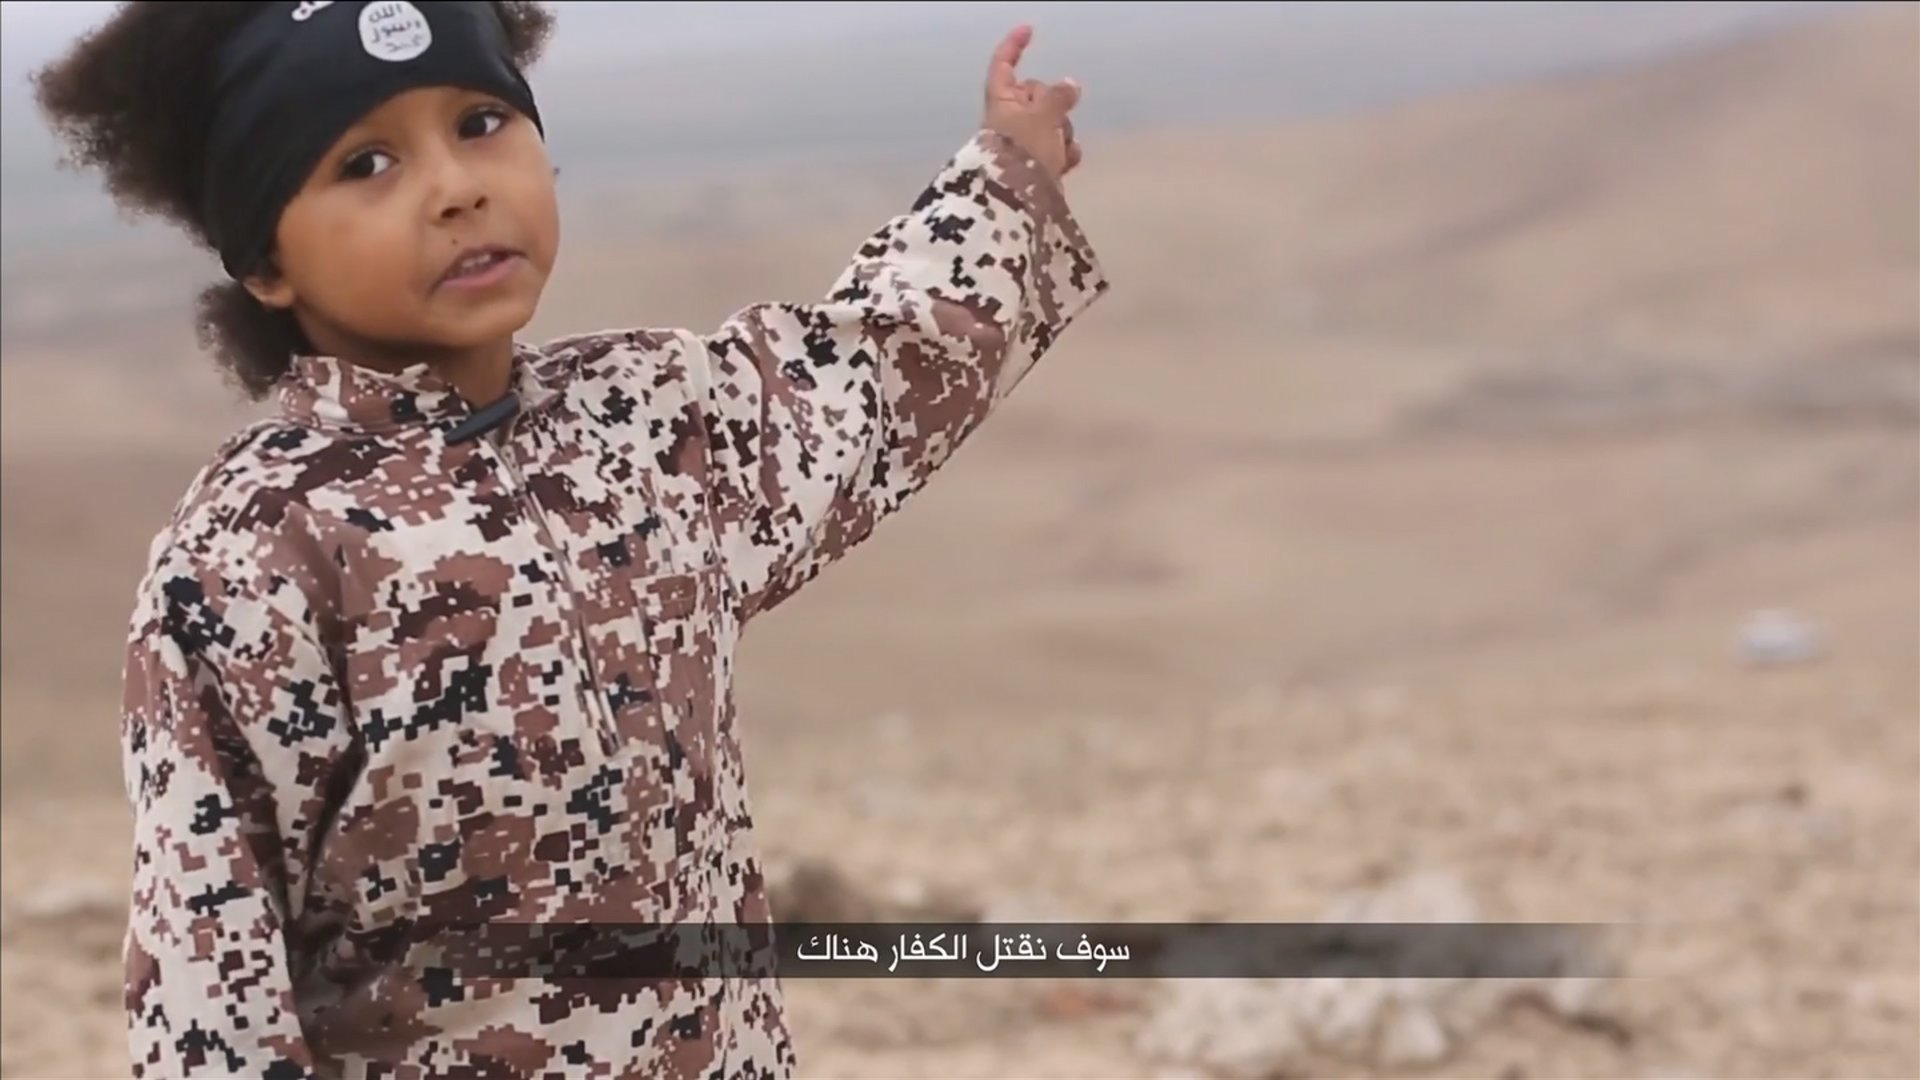 A child speaks in this still image from a handout video obtained from a social media website which has not been independently verified